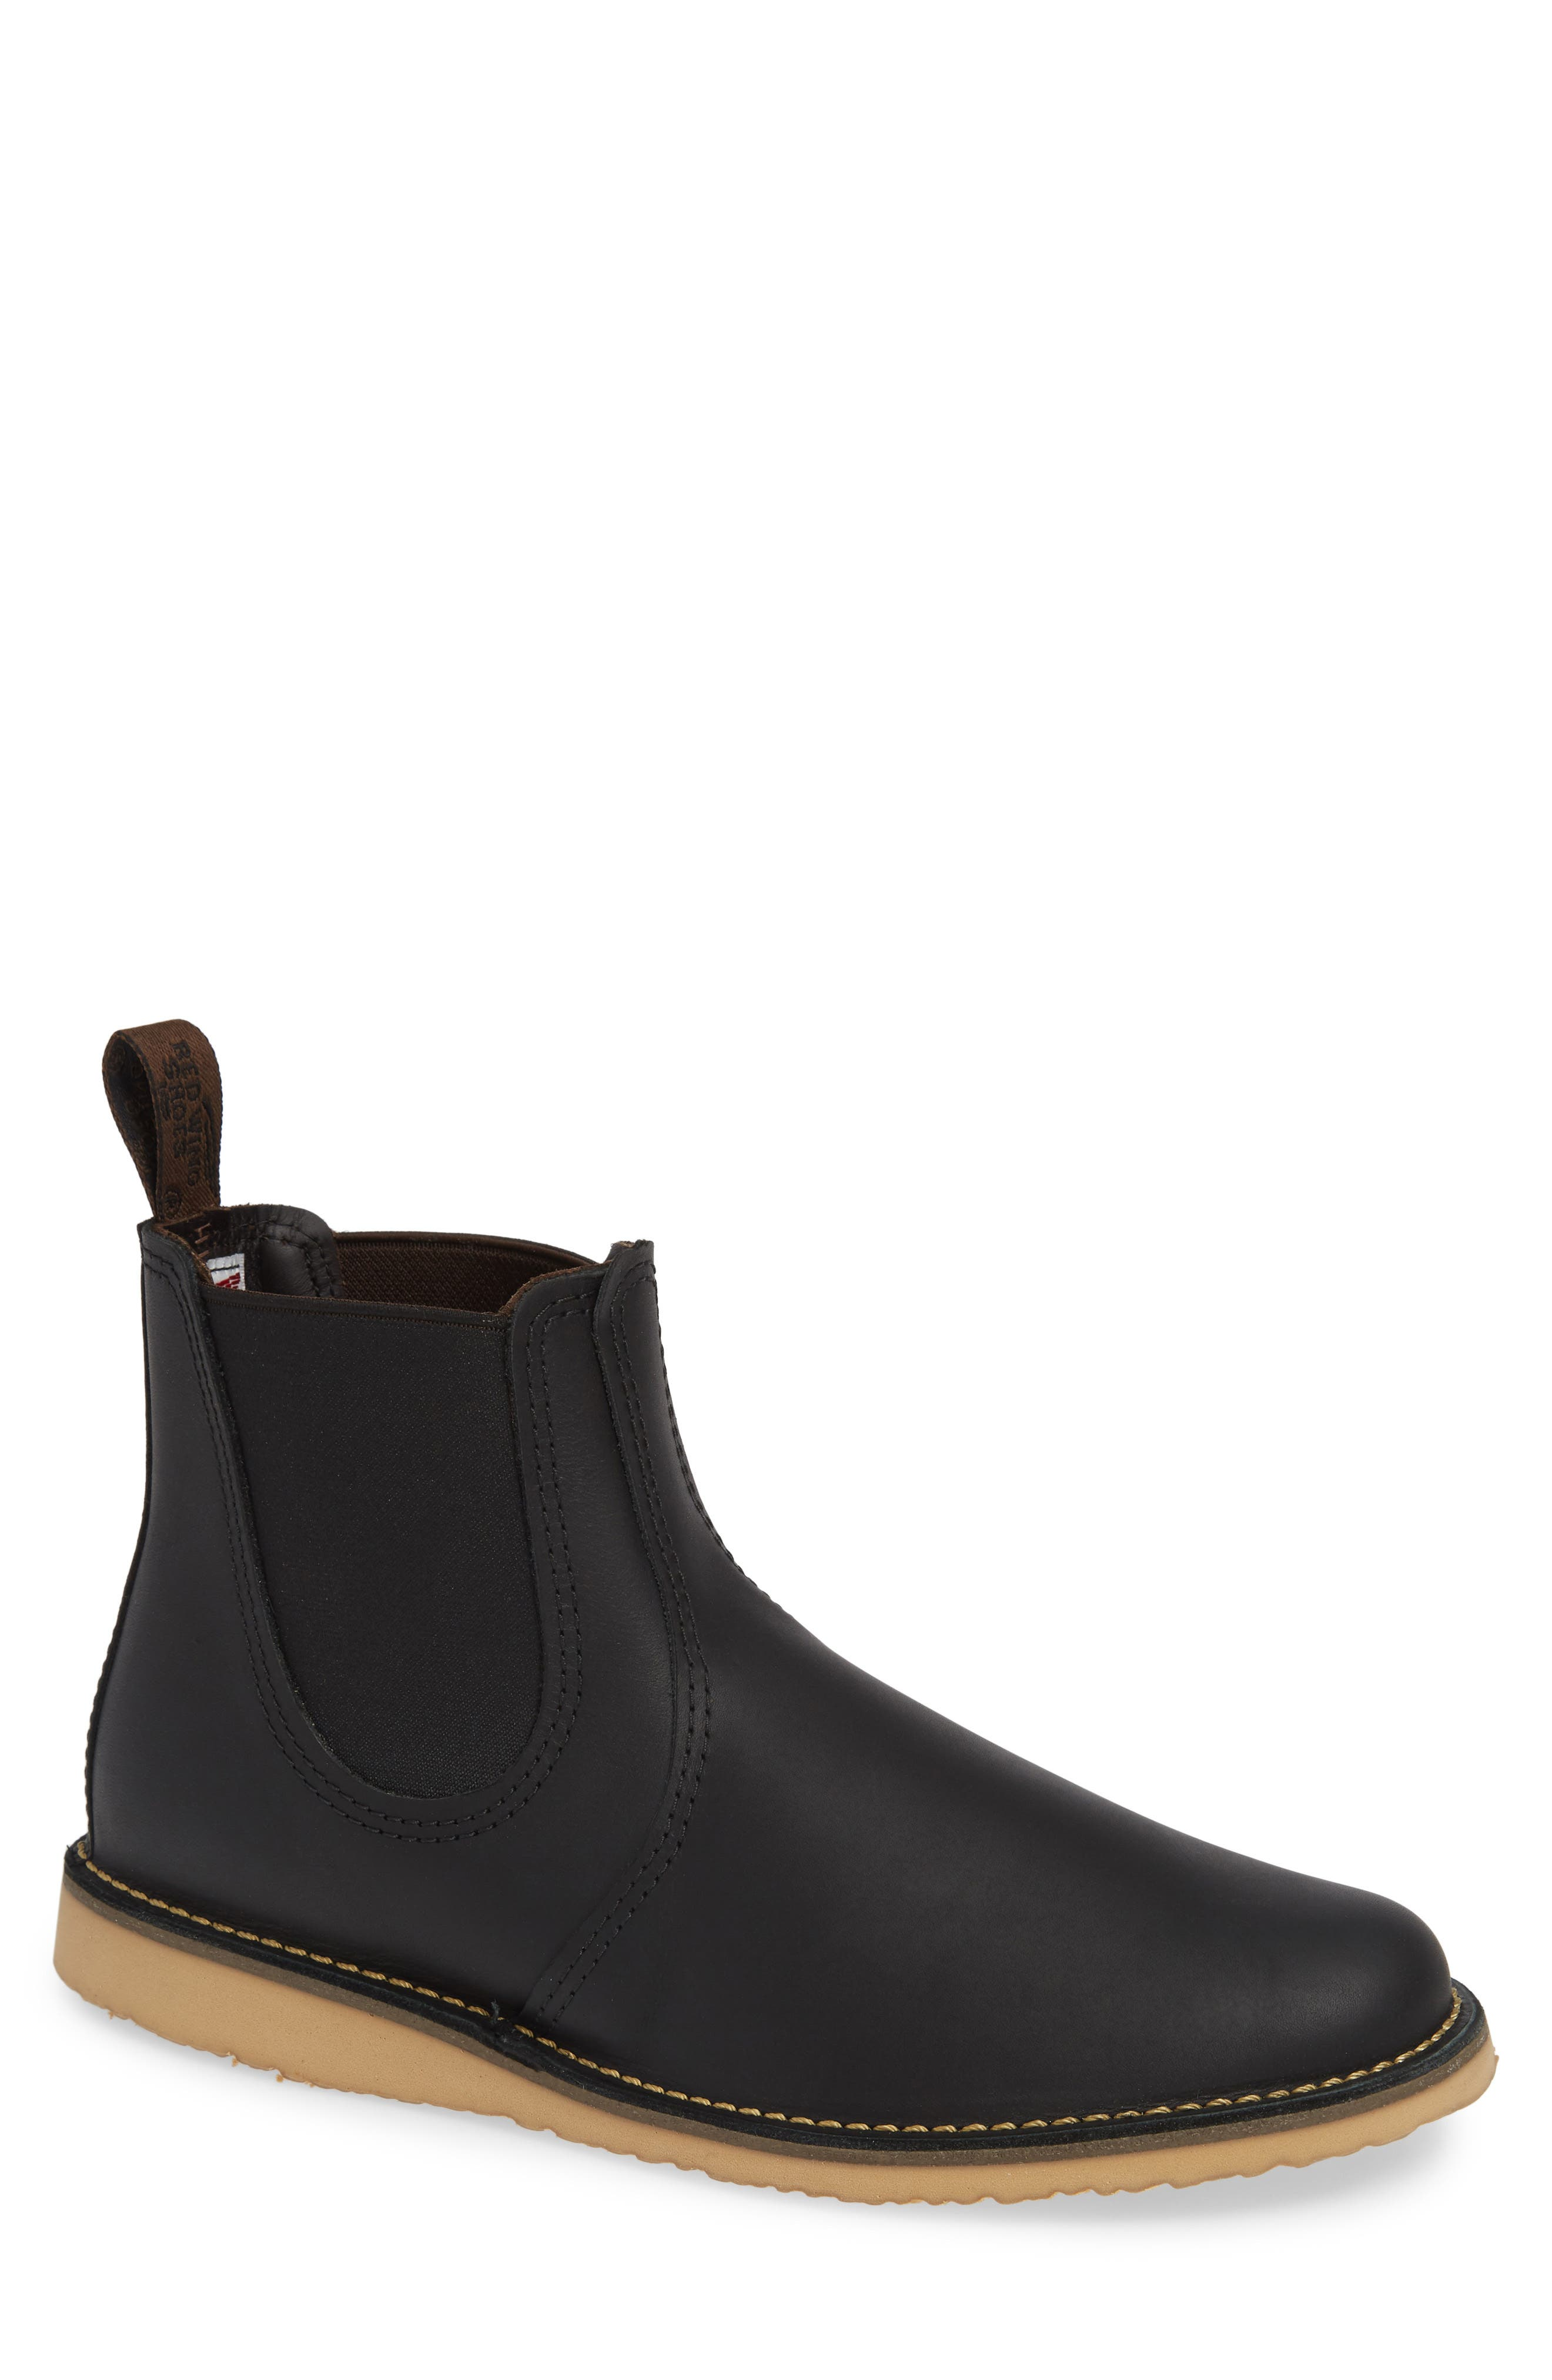 Red Wing Chelsea Boot- Black